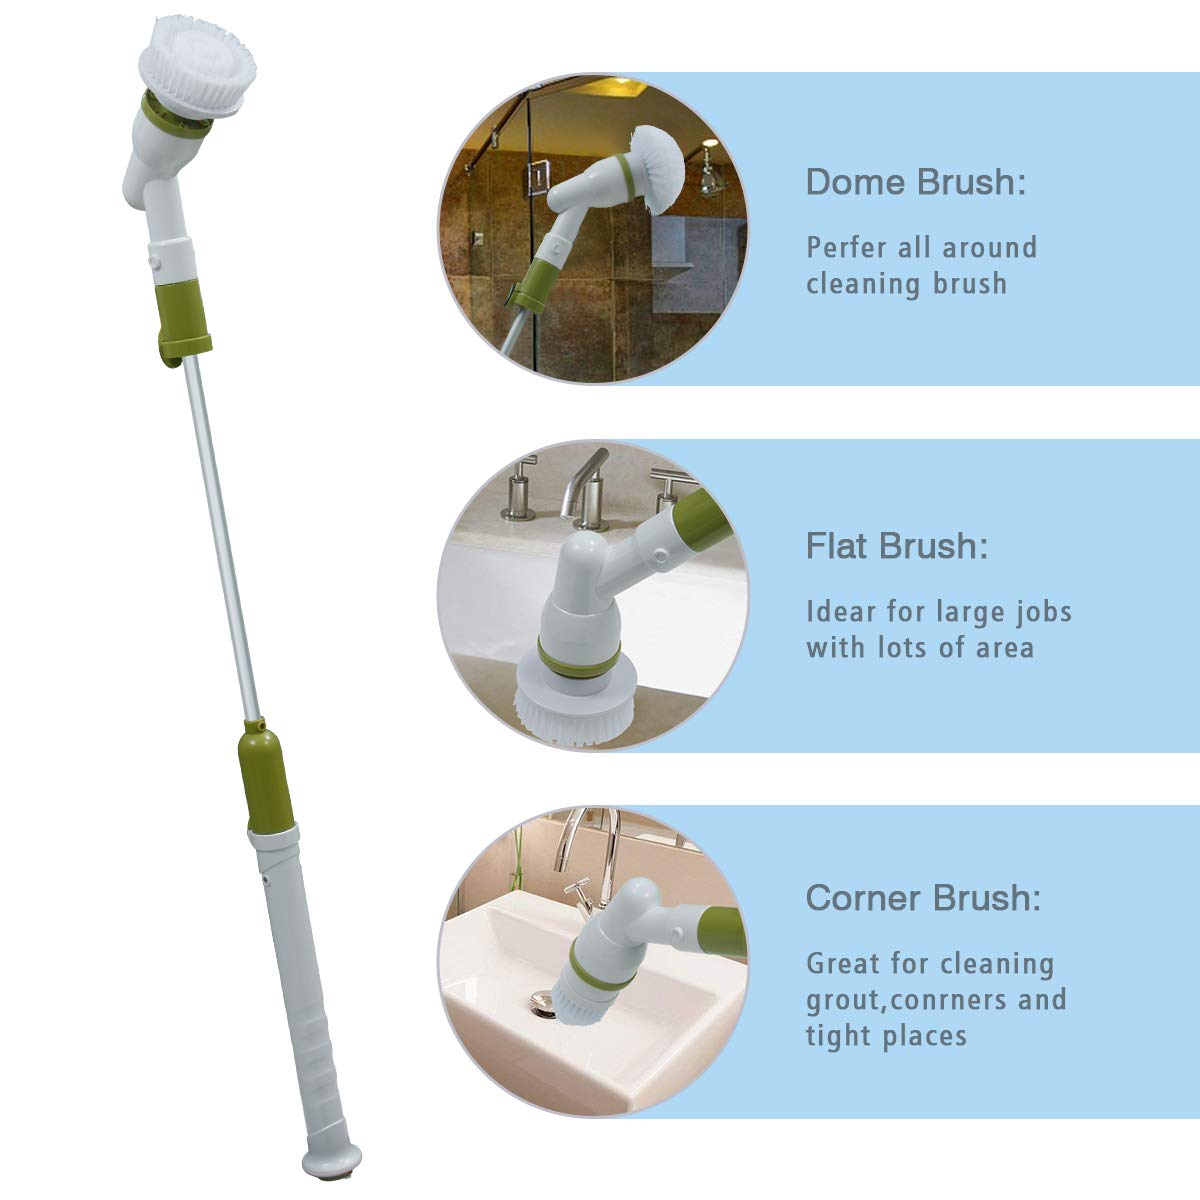 YOUKADA Power Spin Scrubber Cleaning Brush - Upgraded Electric Scrubber with 3 Brush Heads, Extension Handle, Rechargeable Battery - Turbo Cordless Handheld Bathroom, Floor, Tile, Bathtub Cleaner